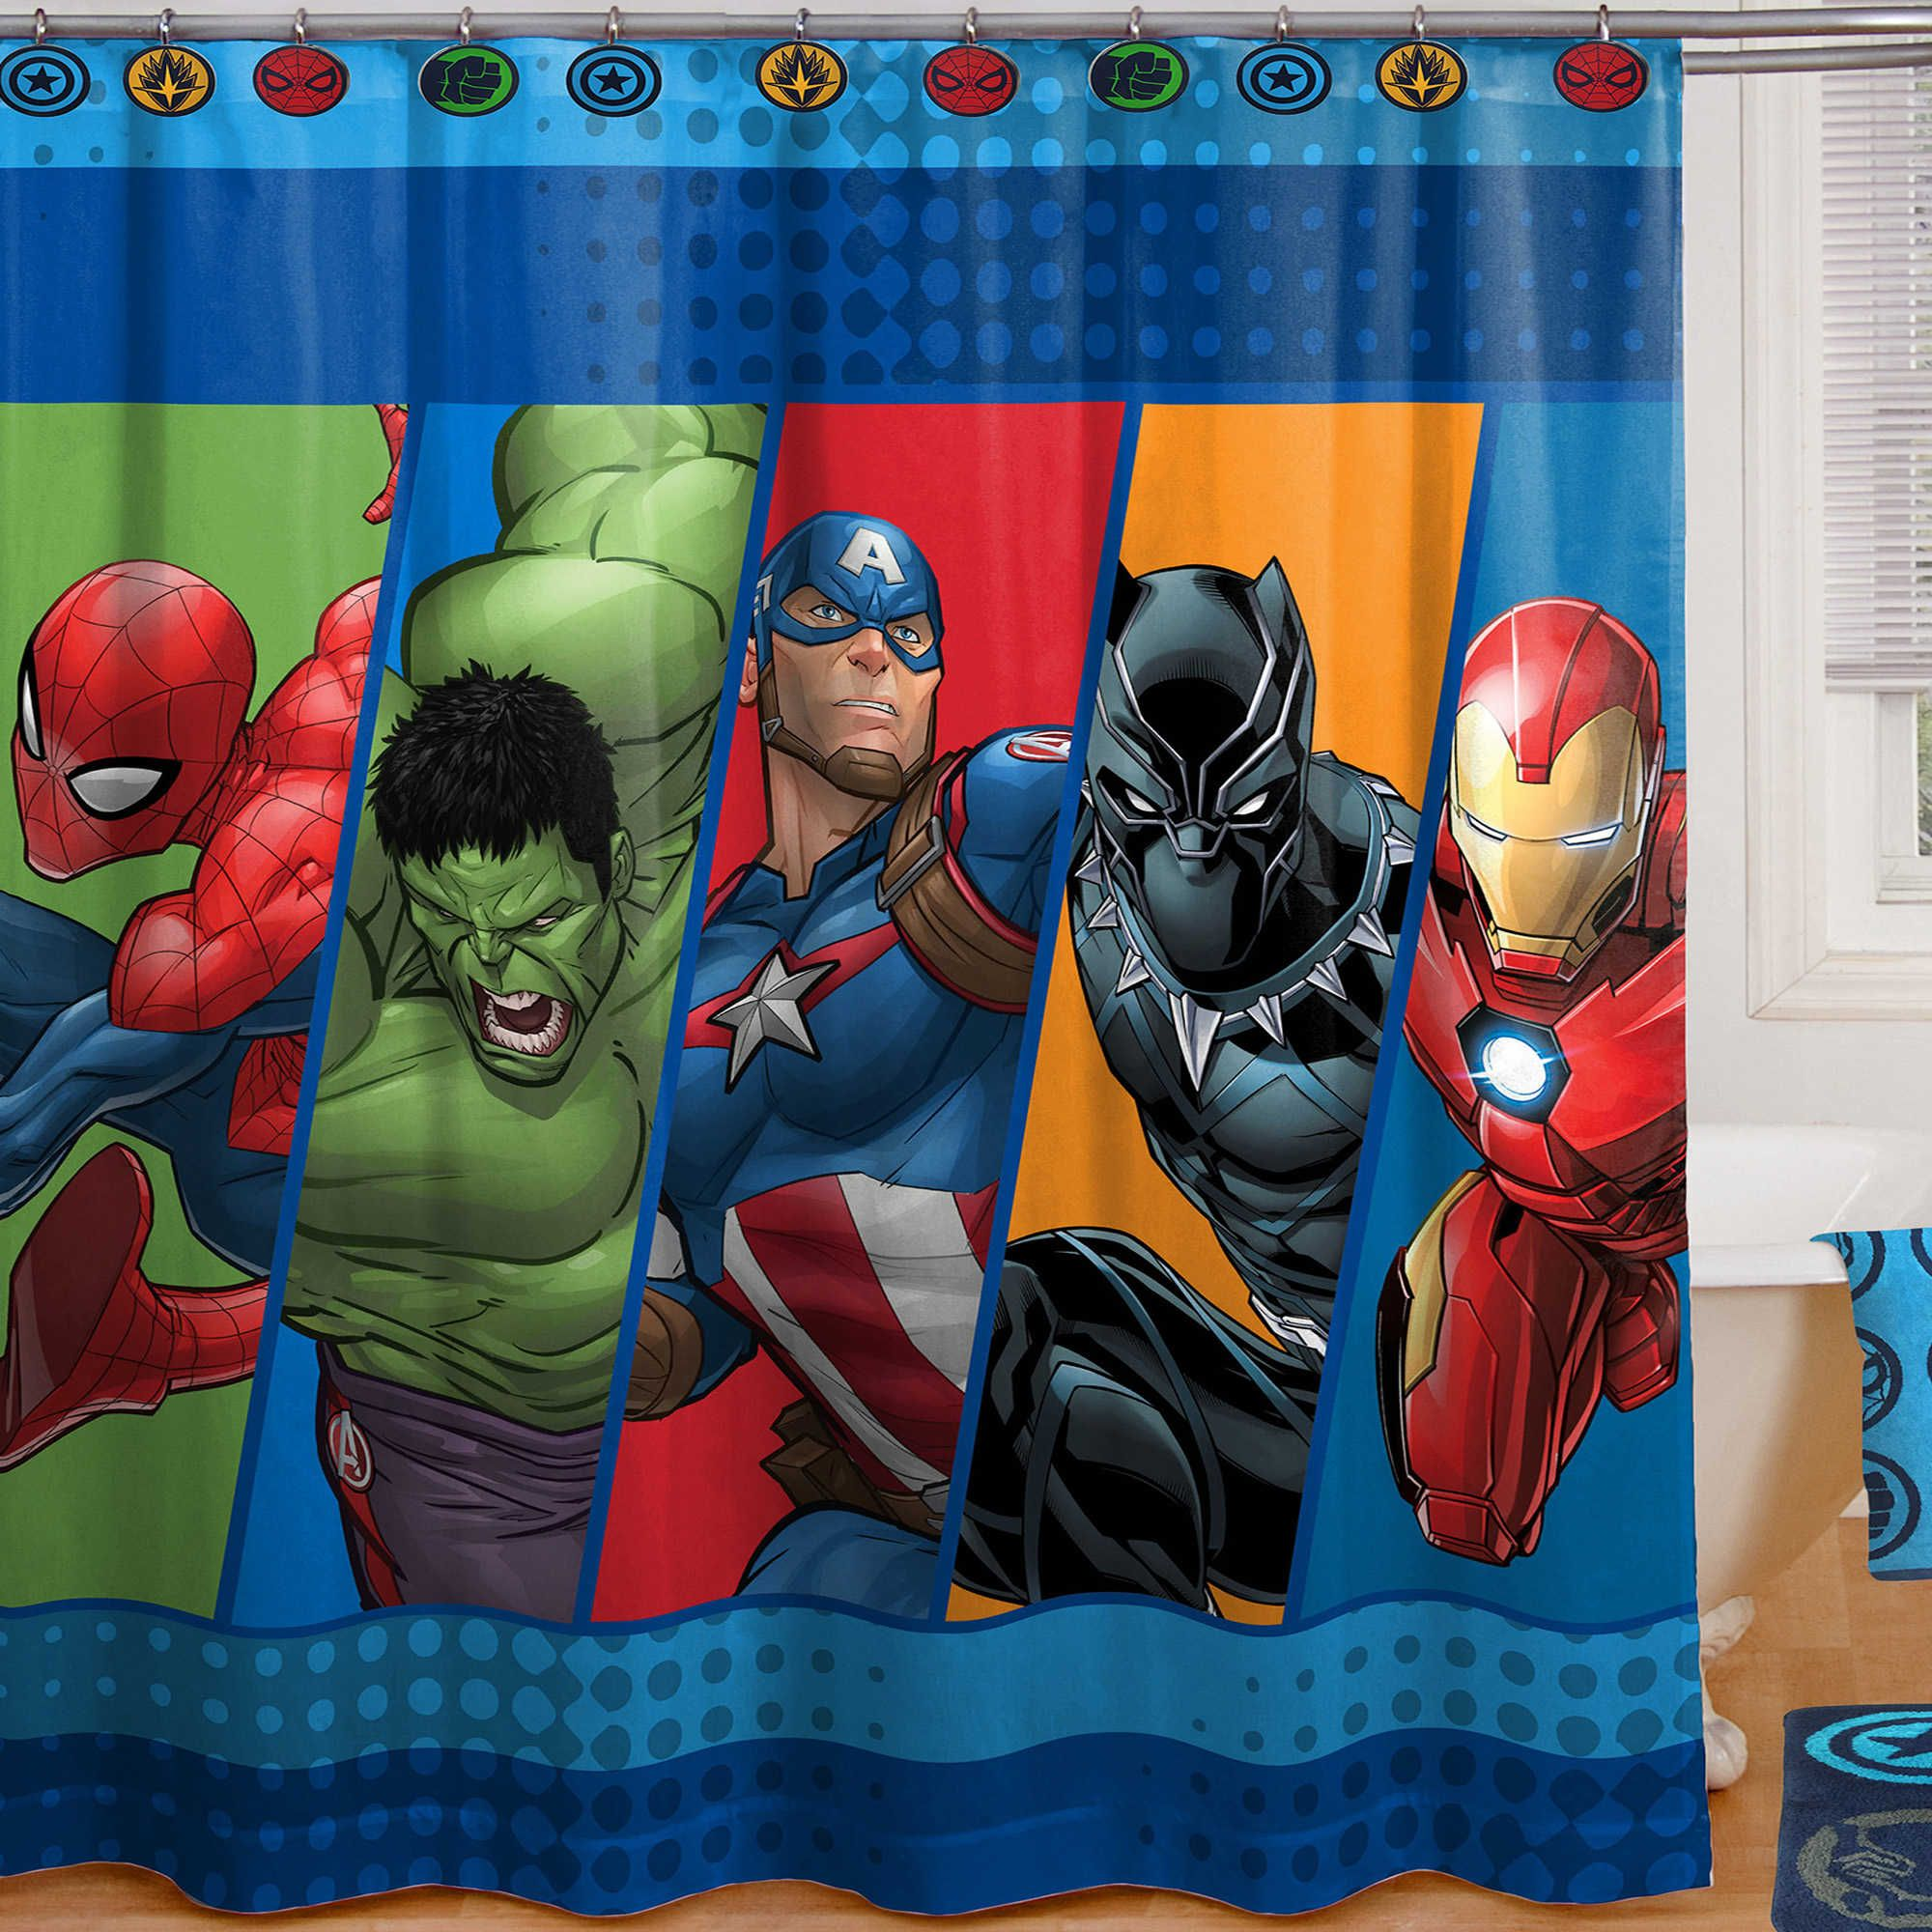 Marvel Comics Shower Curtain Iron Man Black Panther Captain America Hulk And Spider Man Superhero Room Marvel Room Superhero Bathroom